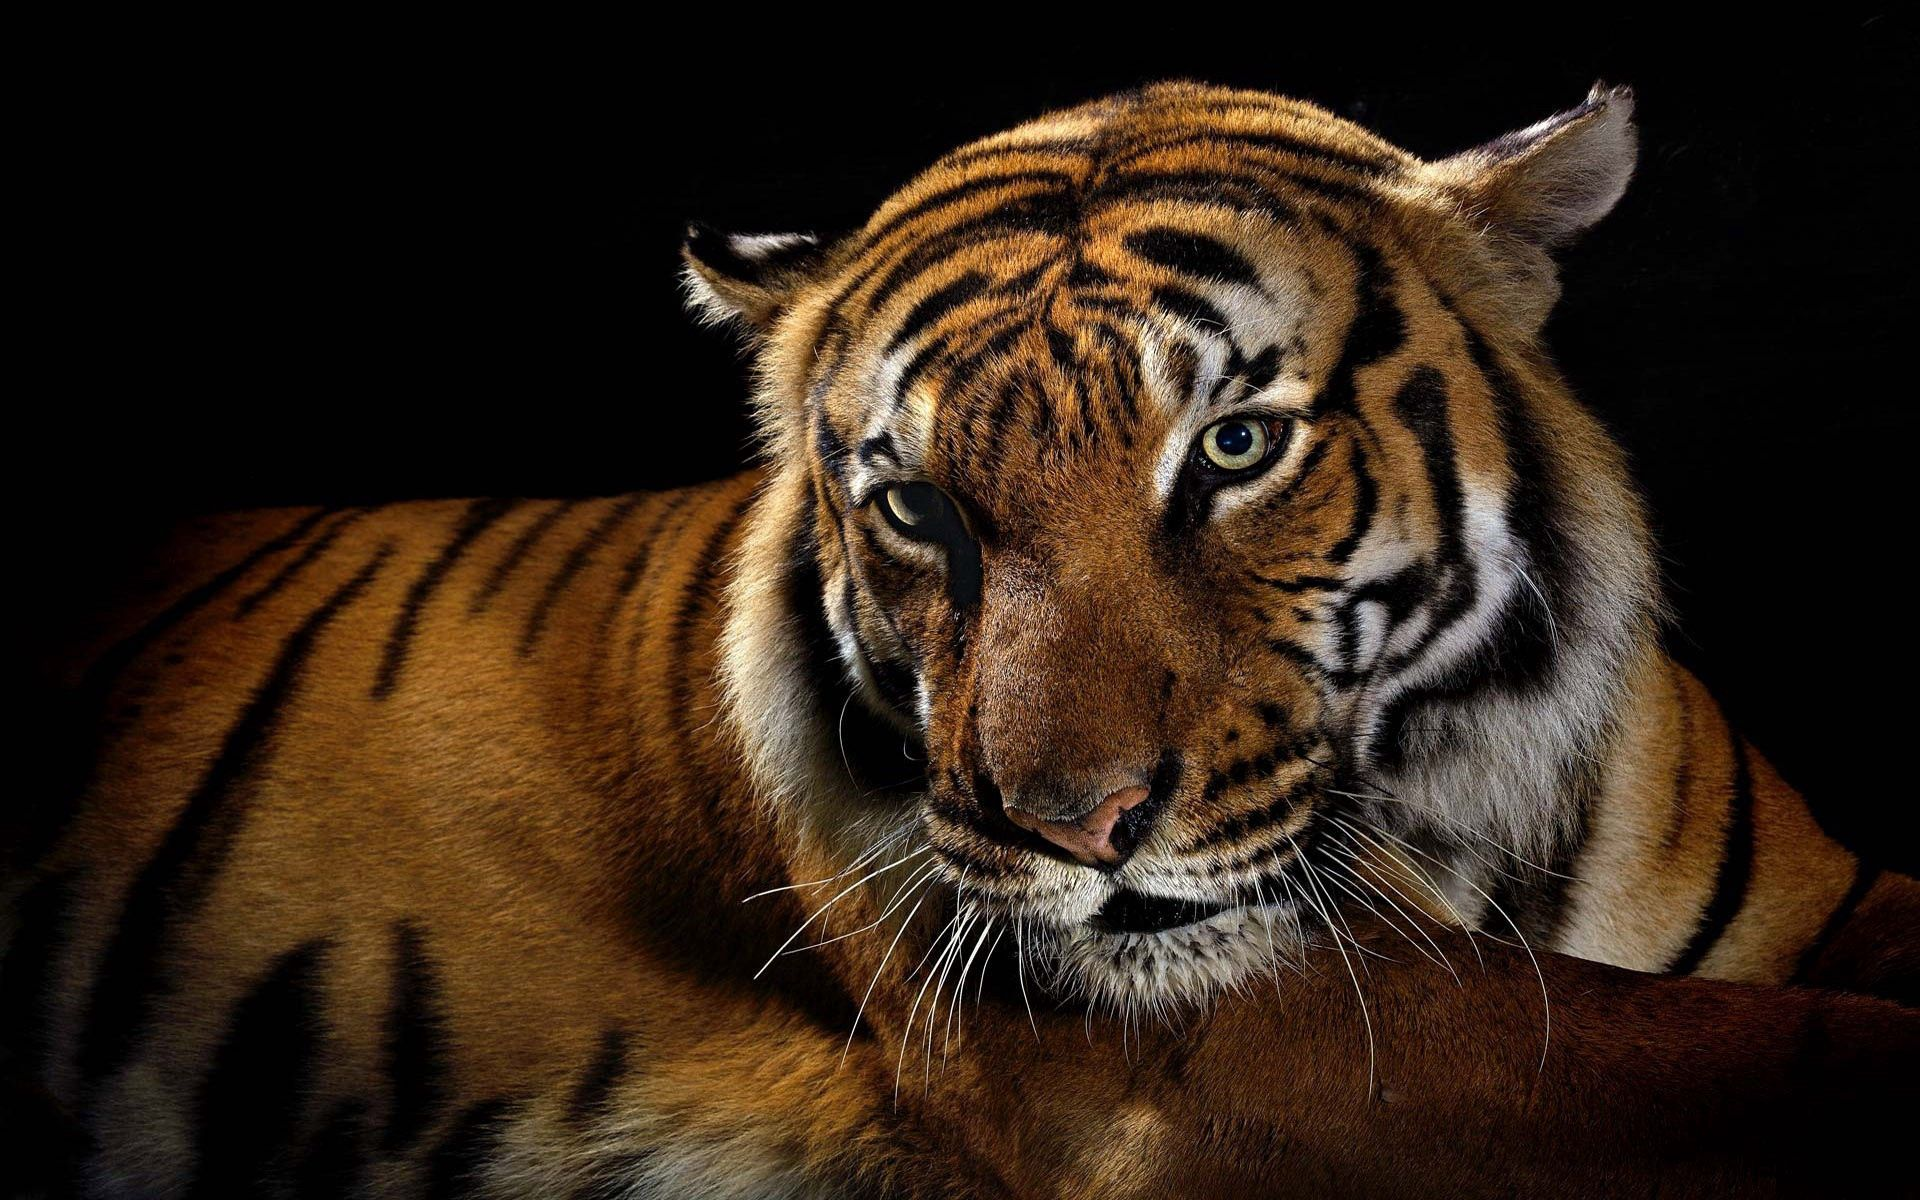 52575 download wallpaper Animals, Tiger, Shadow, Striped, Big Cat screensavers and pictures for free